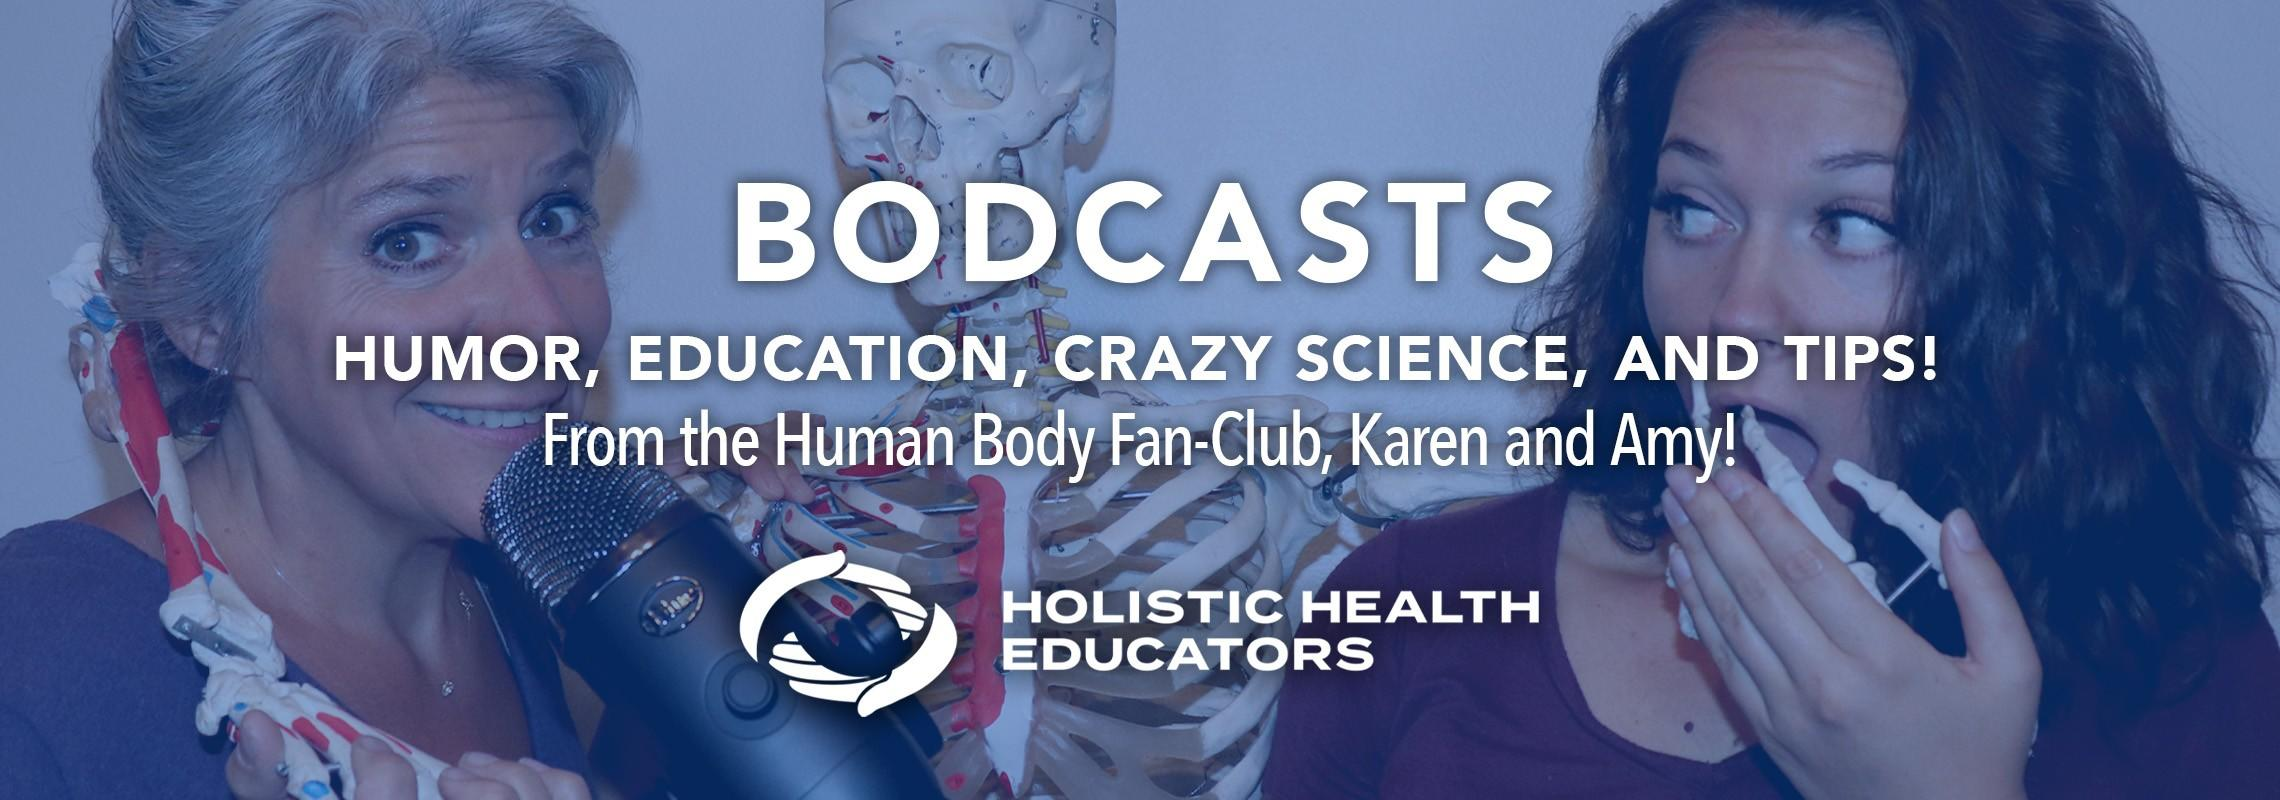 holistic podcast, healthy podcast, human body podcast